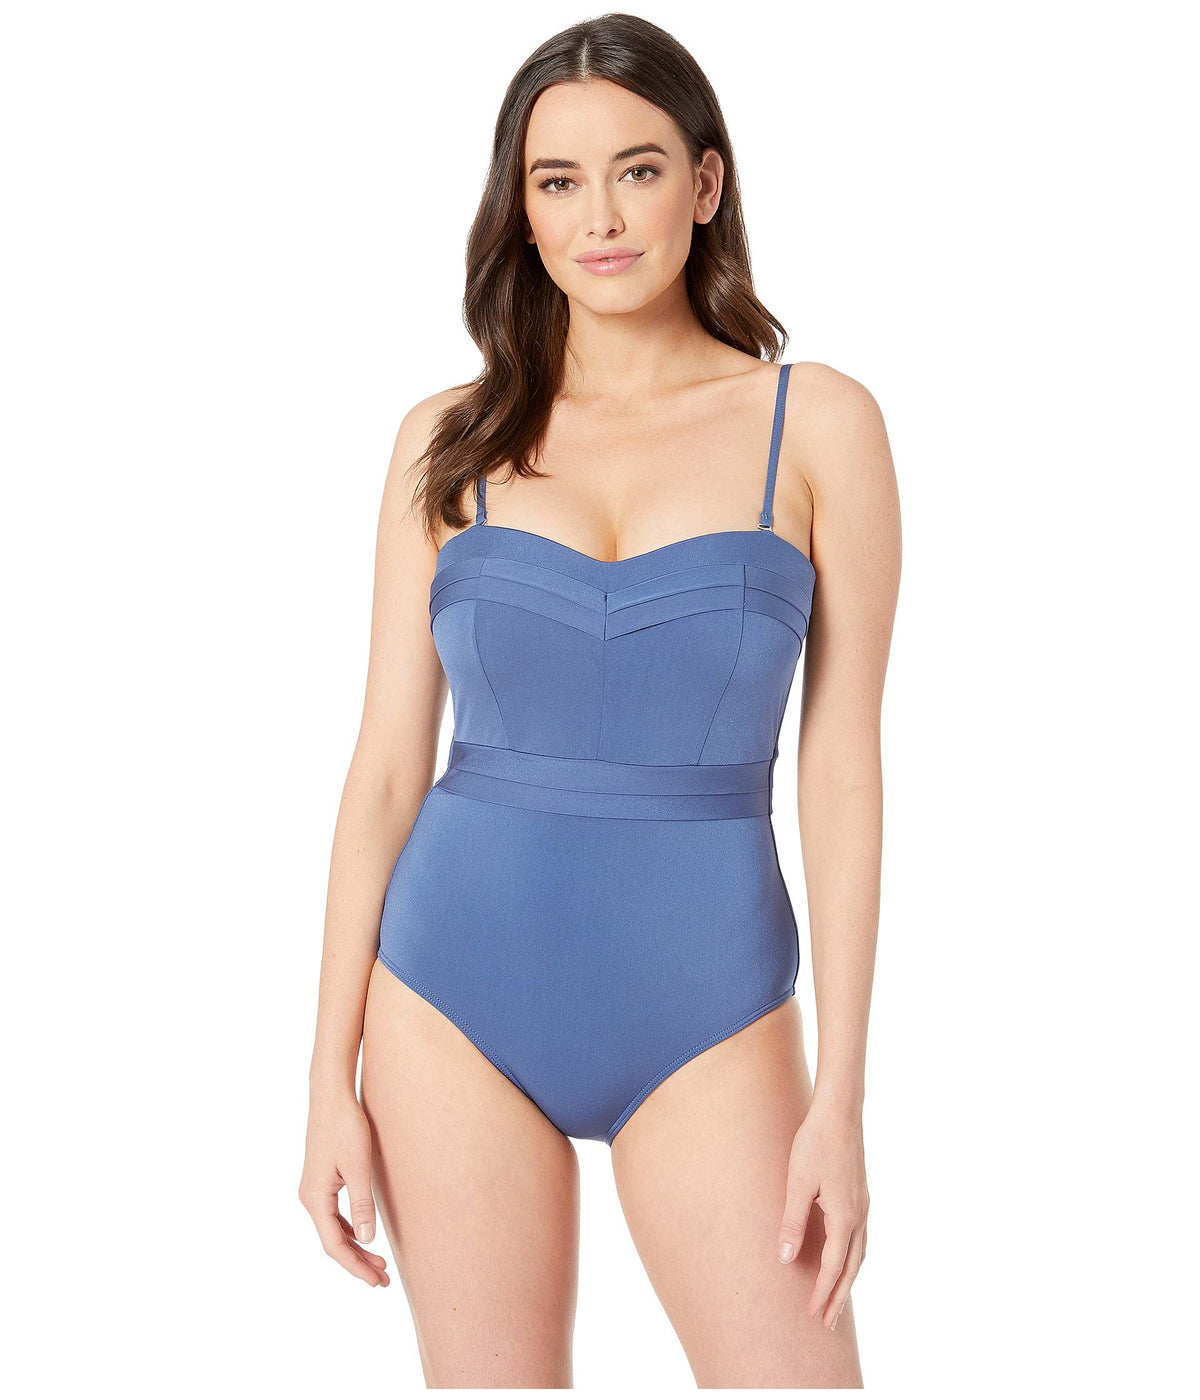 Mirage D-Cup Bandeau One-Piece